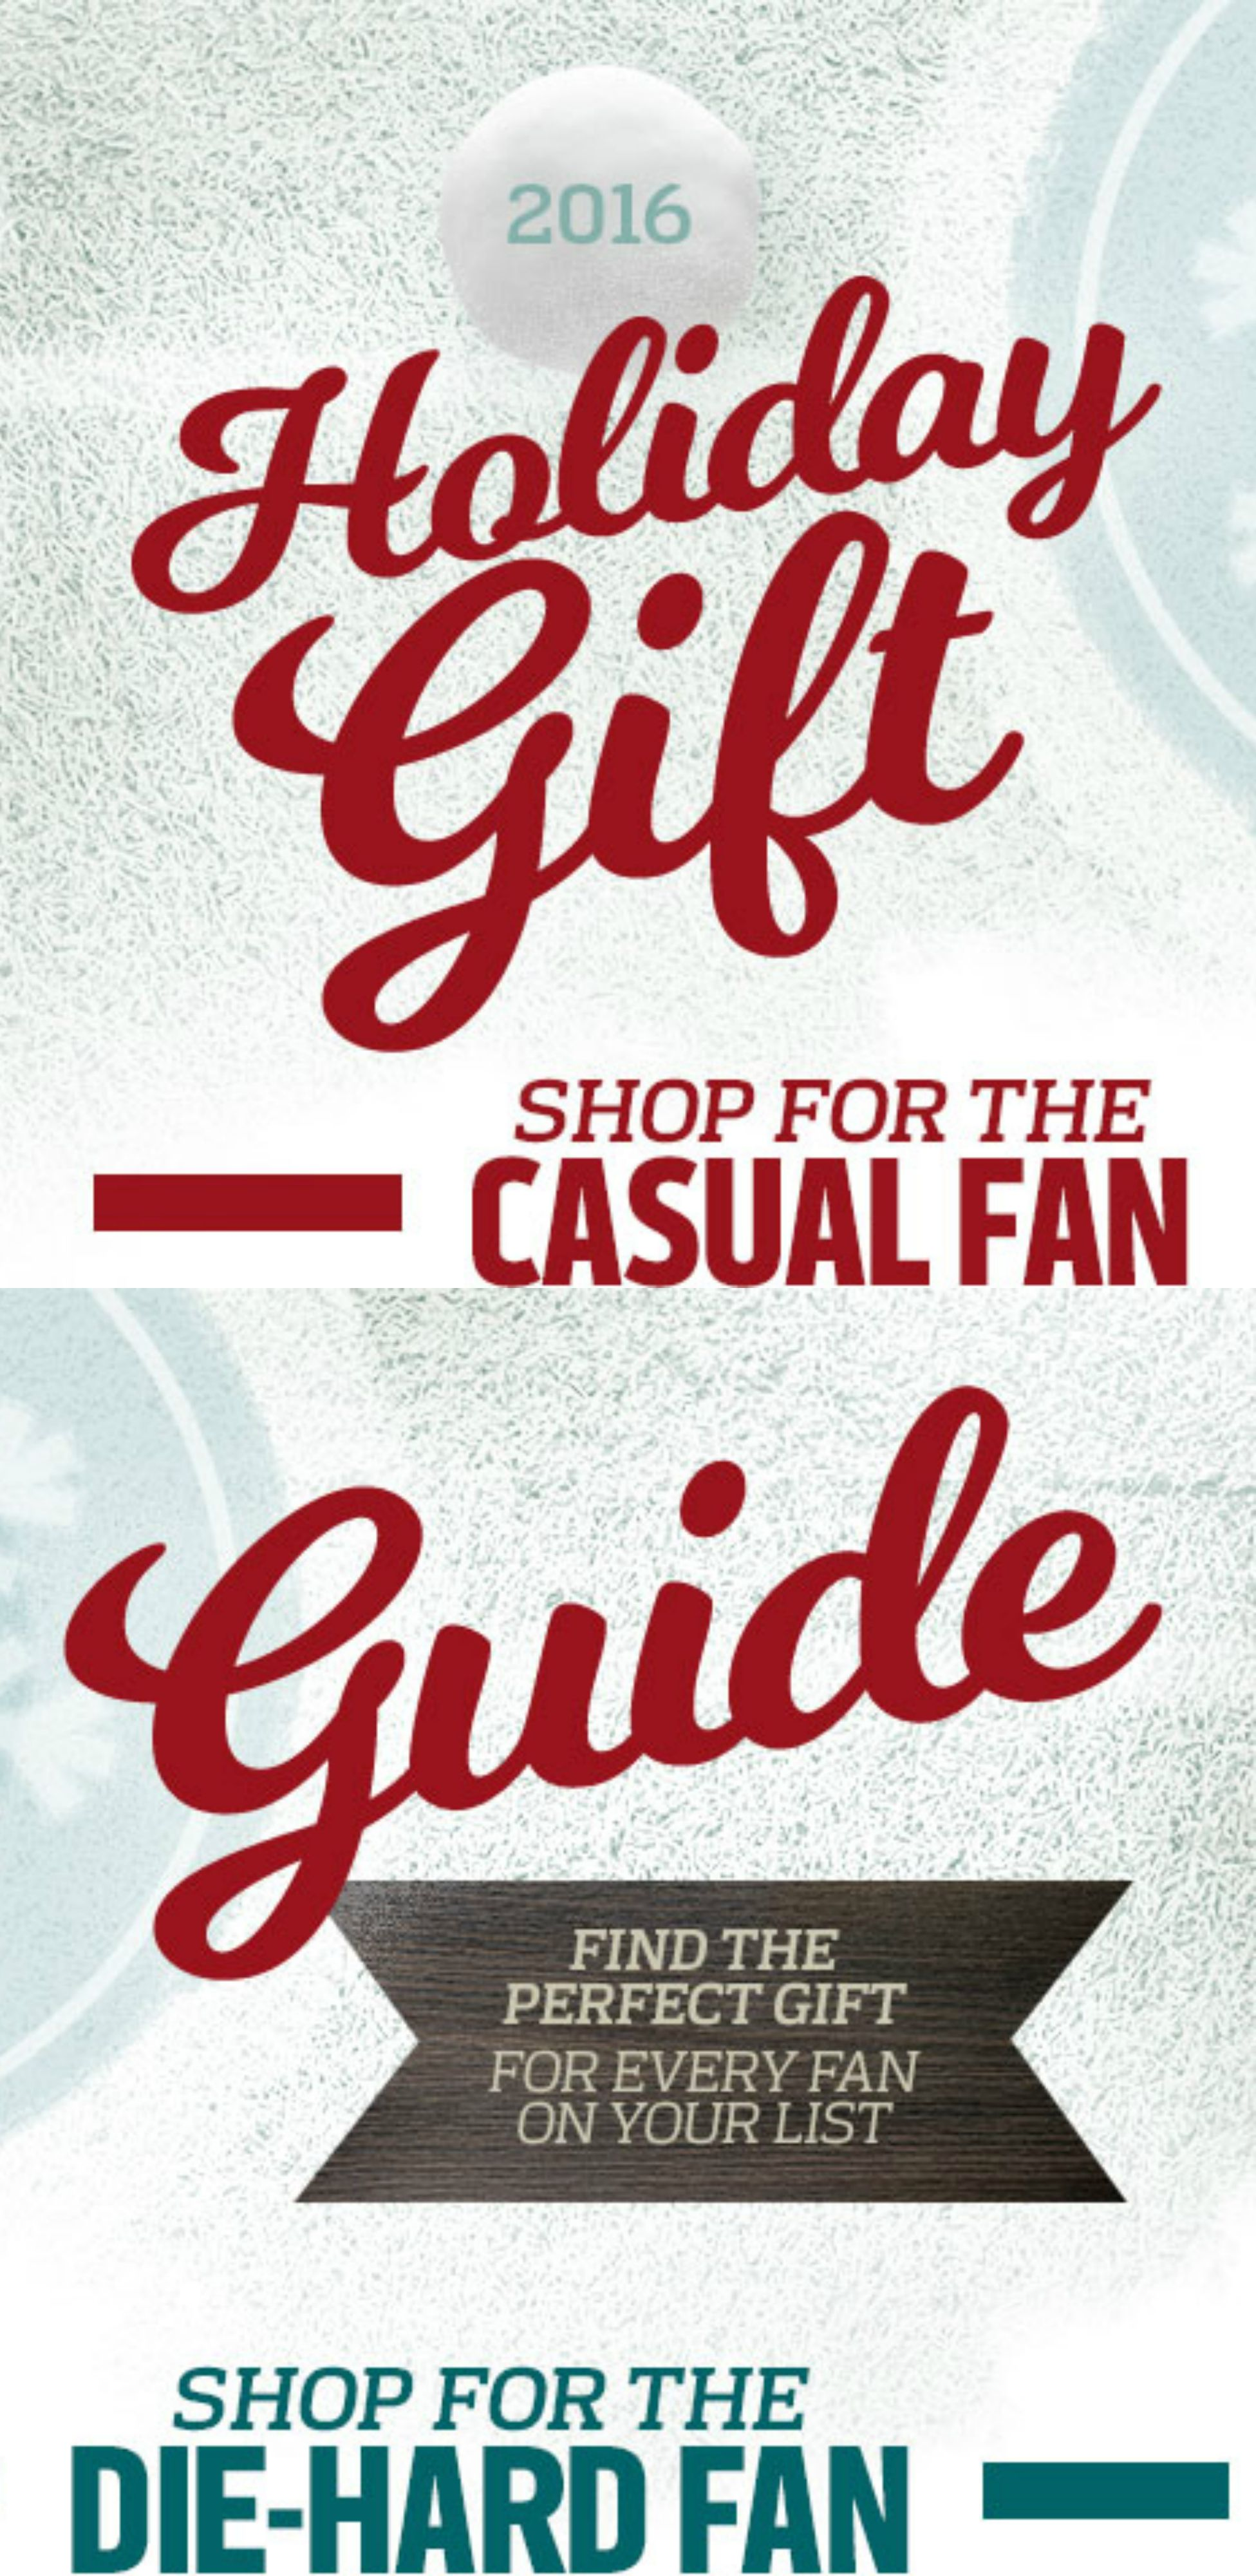 fae1935831e NFL Shop Gift Guide - Find the perfect gift for every fan on your list. Black  Friday Sales happening now! #black #friday #nfl #for #him #guy #gifts ...